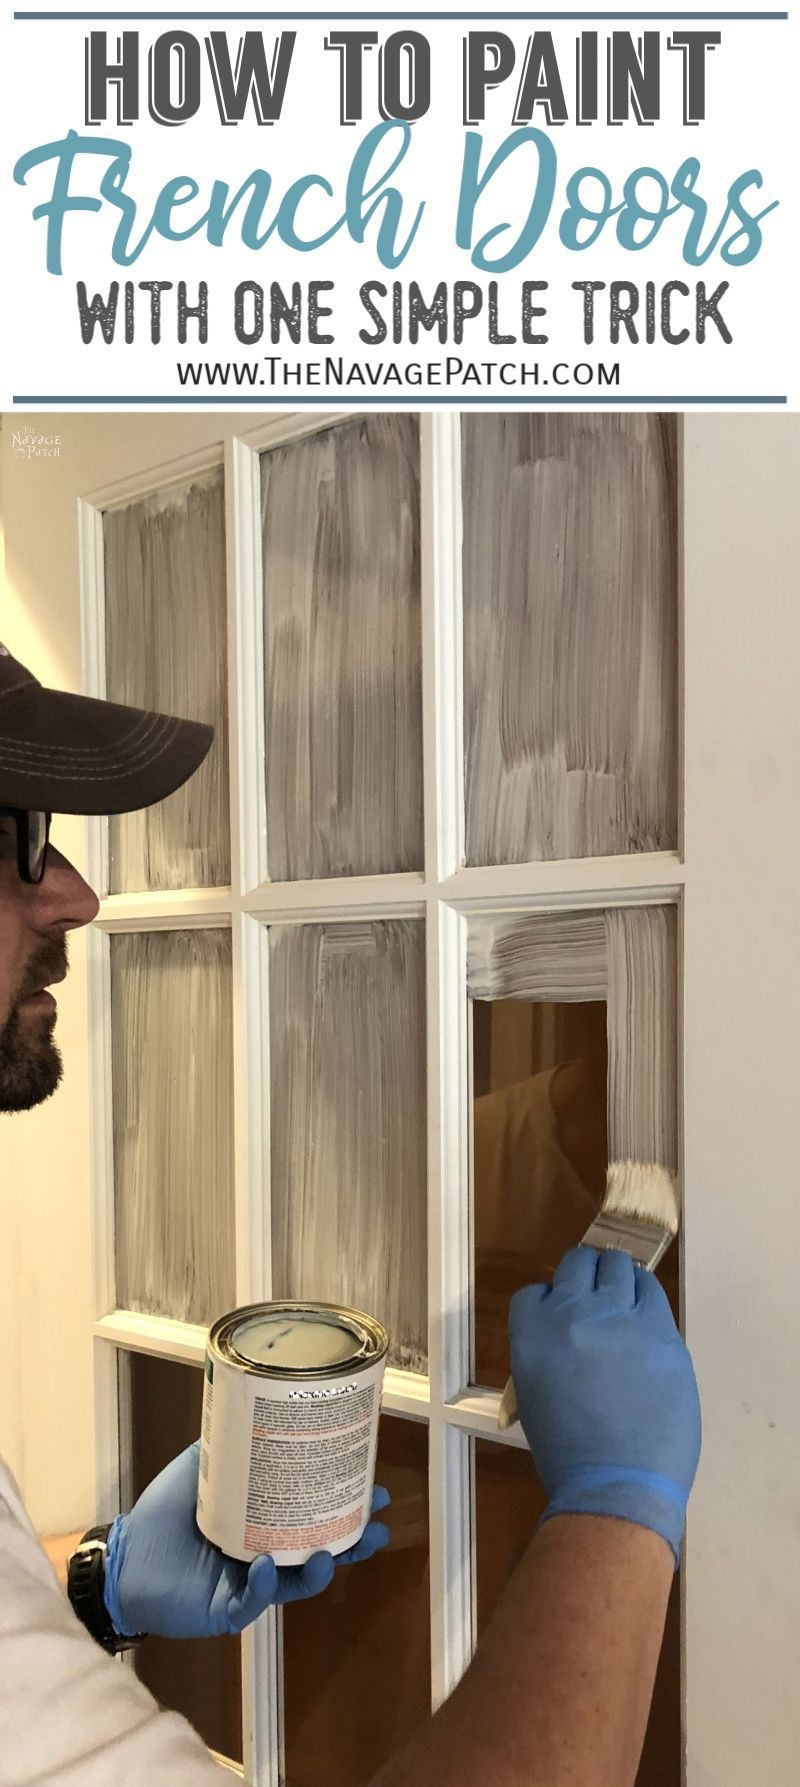 How To Paint French Doors The Easy Way Diy Home Repair Home Diy Diy Home Improvement